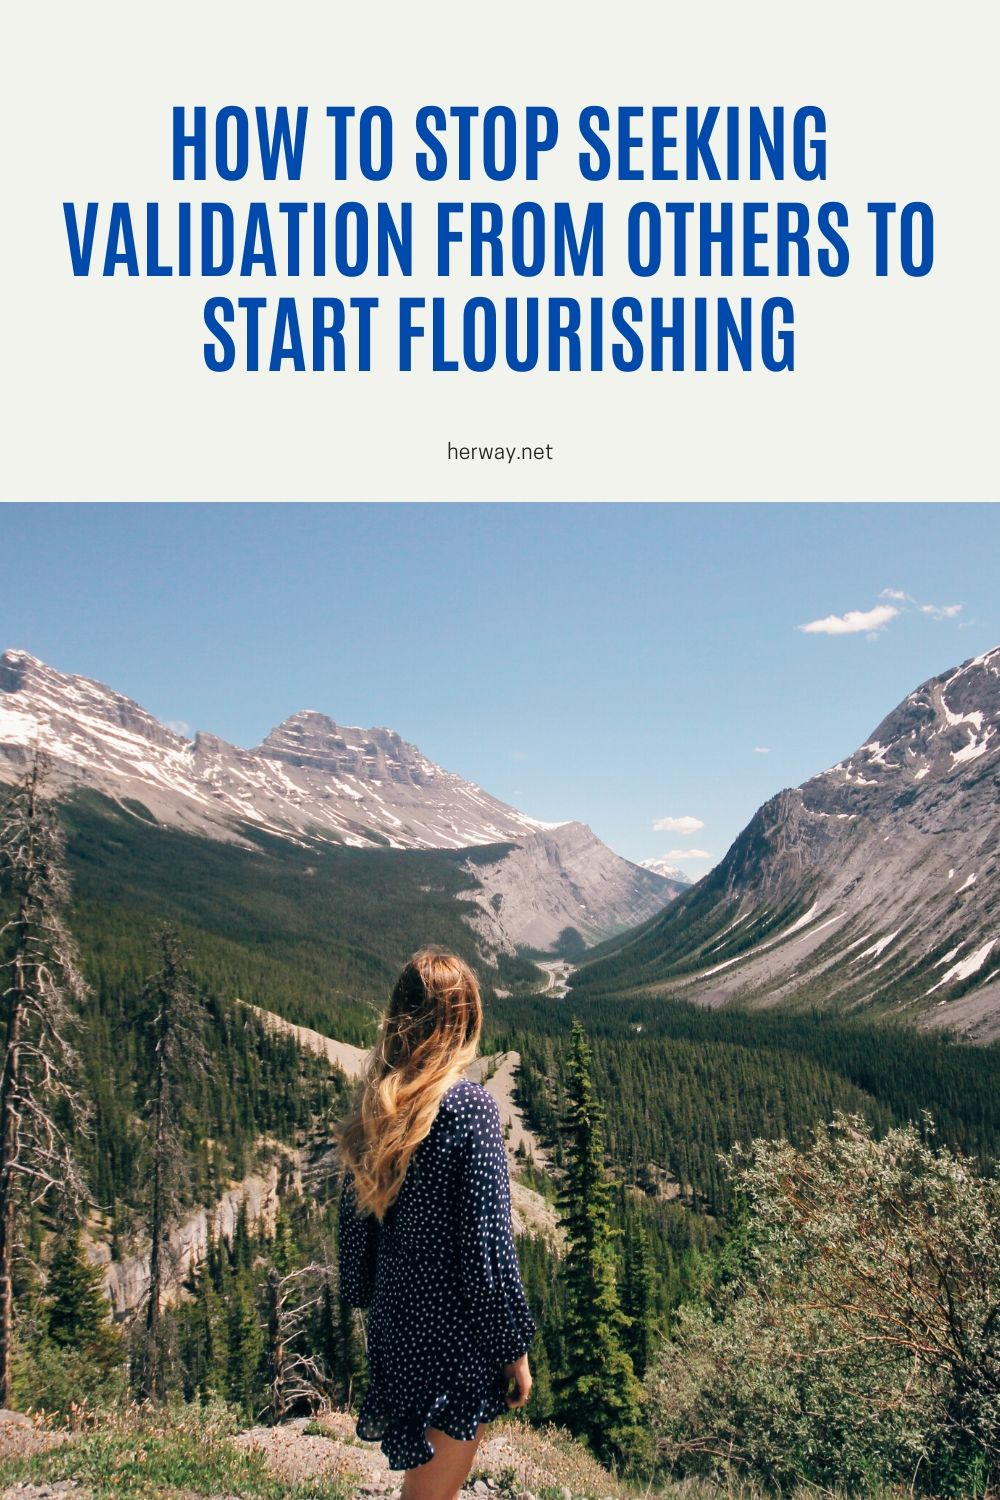 How To Stop Seeking Validation From Others To Start Flourishing